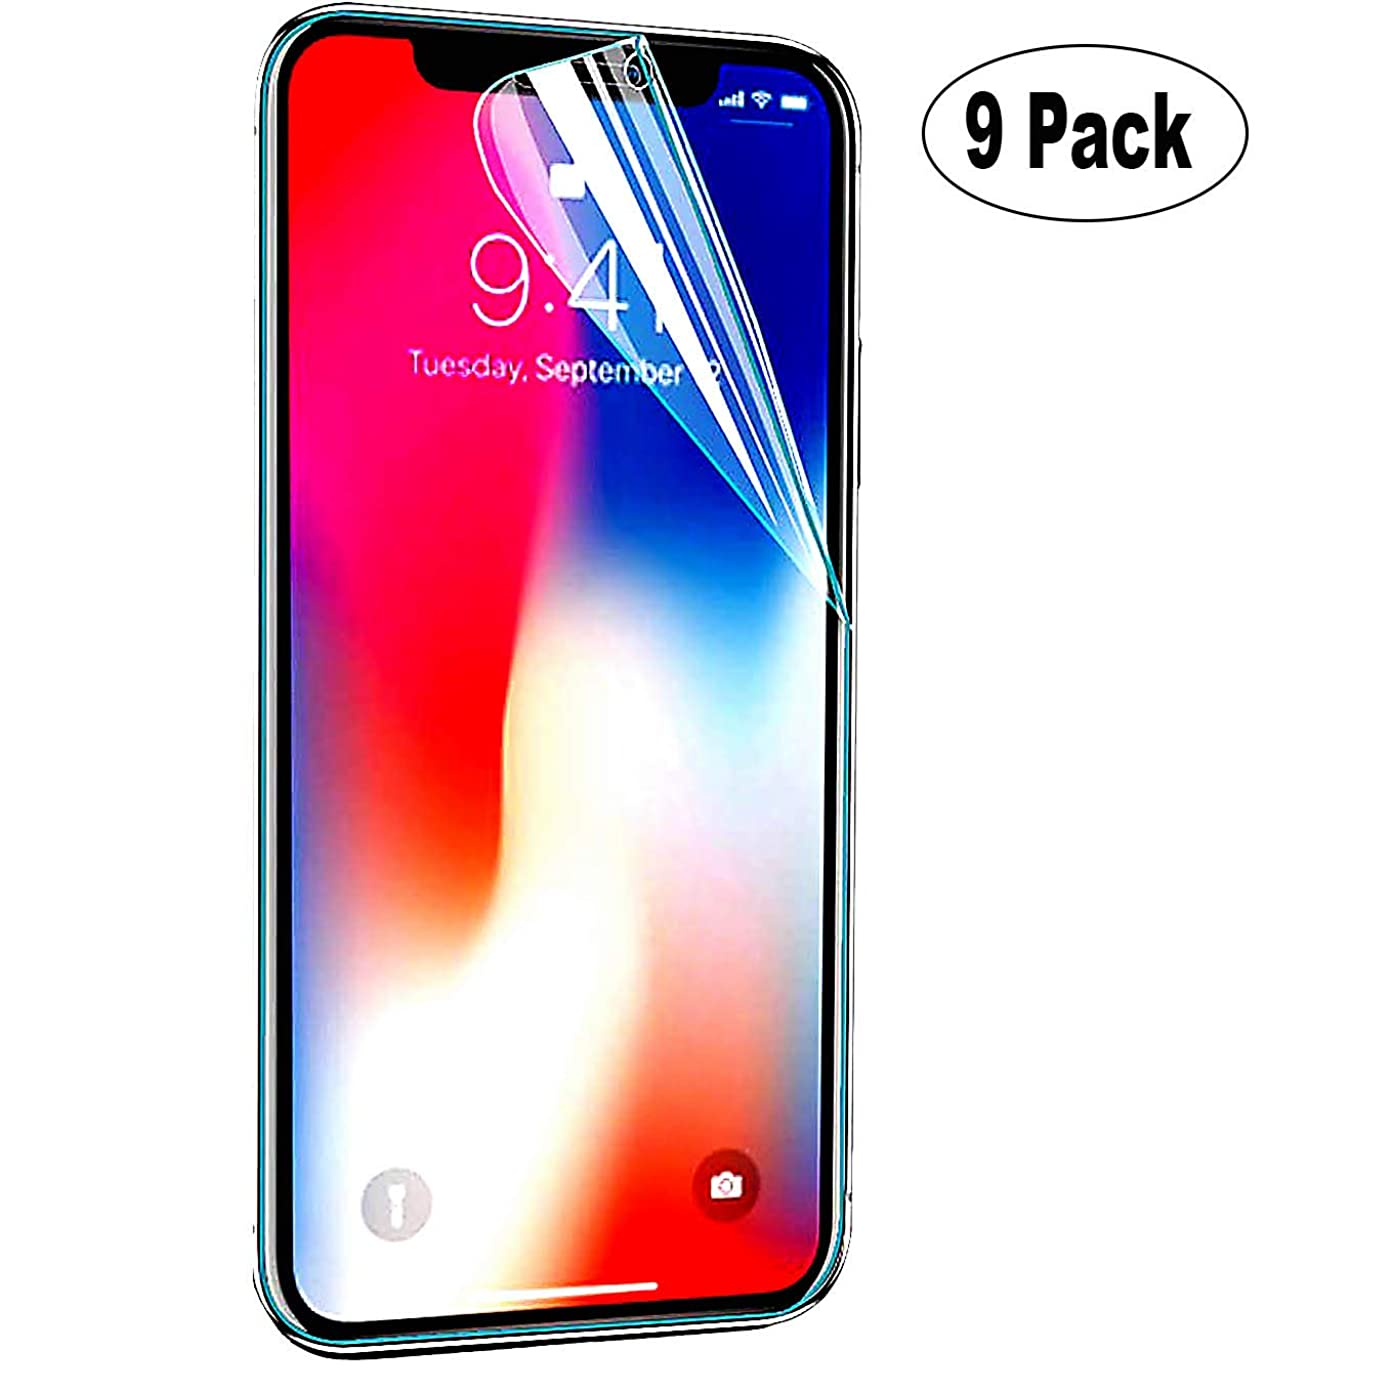 [9-Pack] High Definition HD-Clear Film Screen Protector,Not Glass,3D Touch Edge to Edge,2.5D Edge,Anti-Scratch iBarbe Compatible with Apple iPhone XR (6.1-inch)